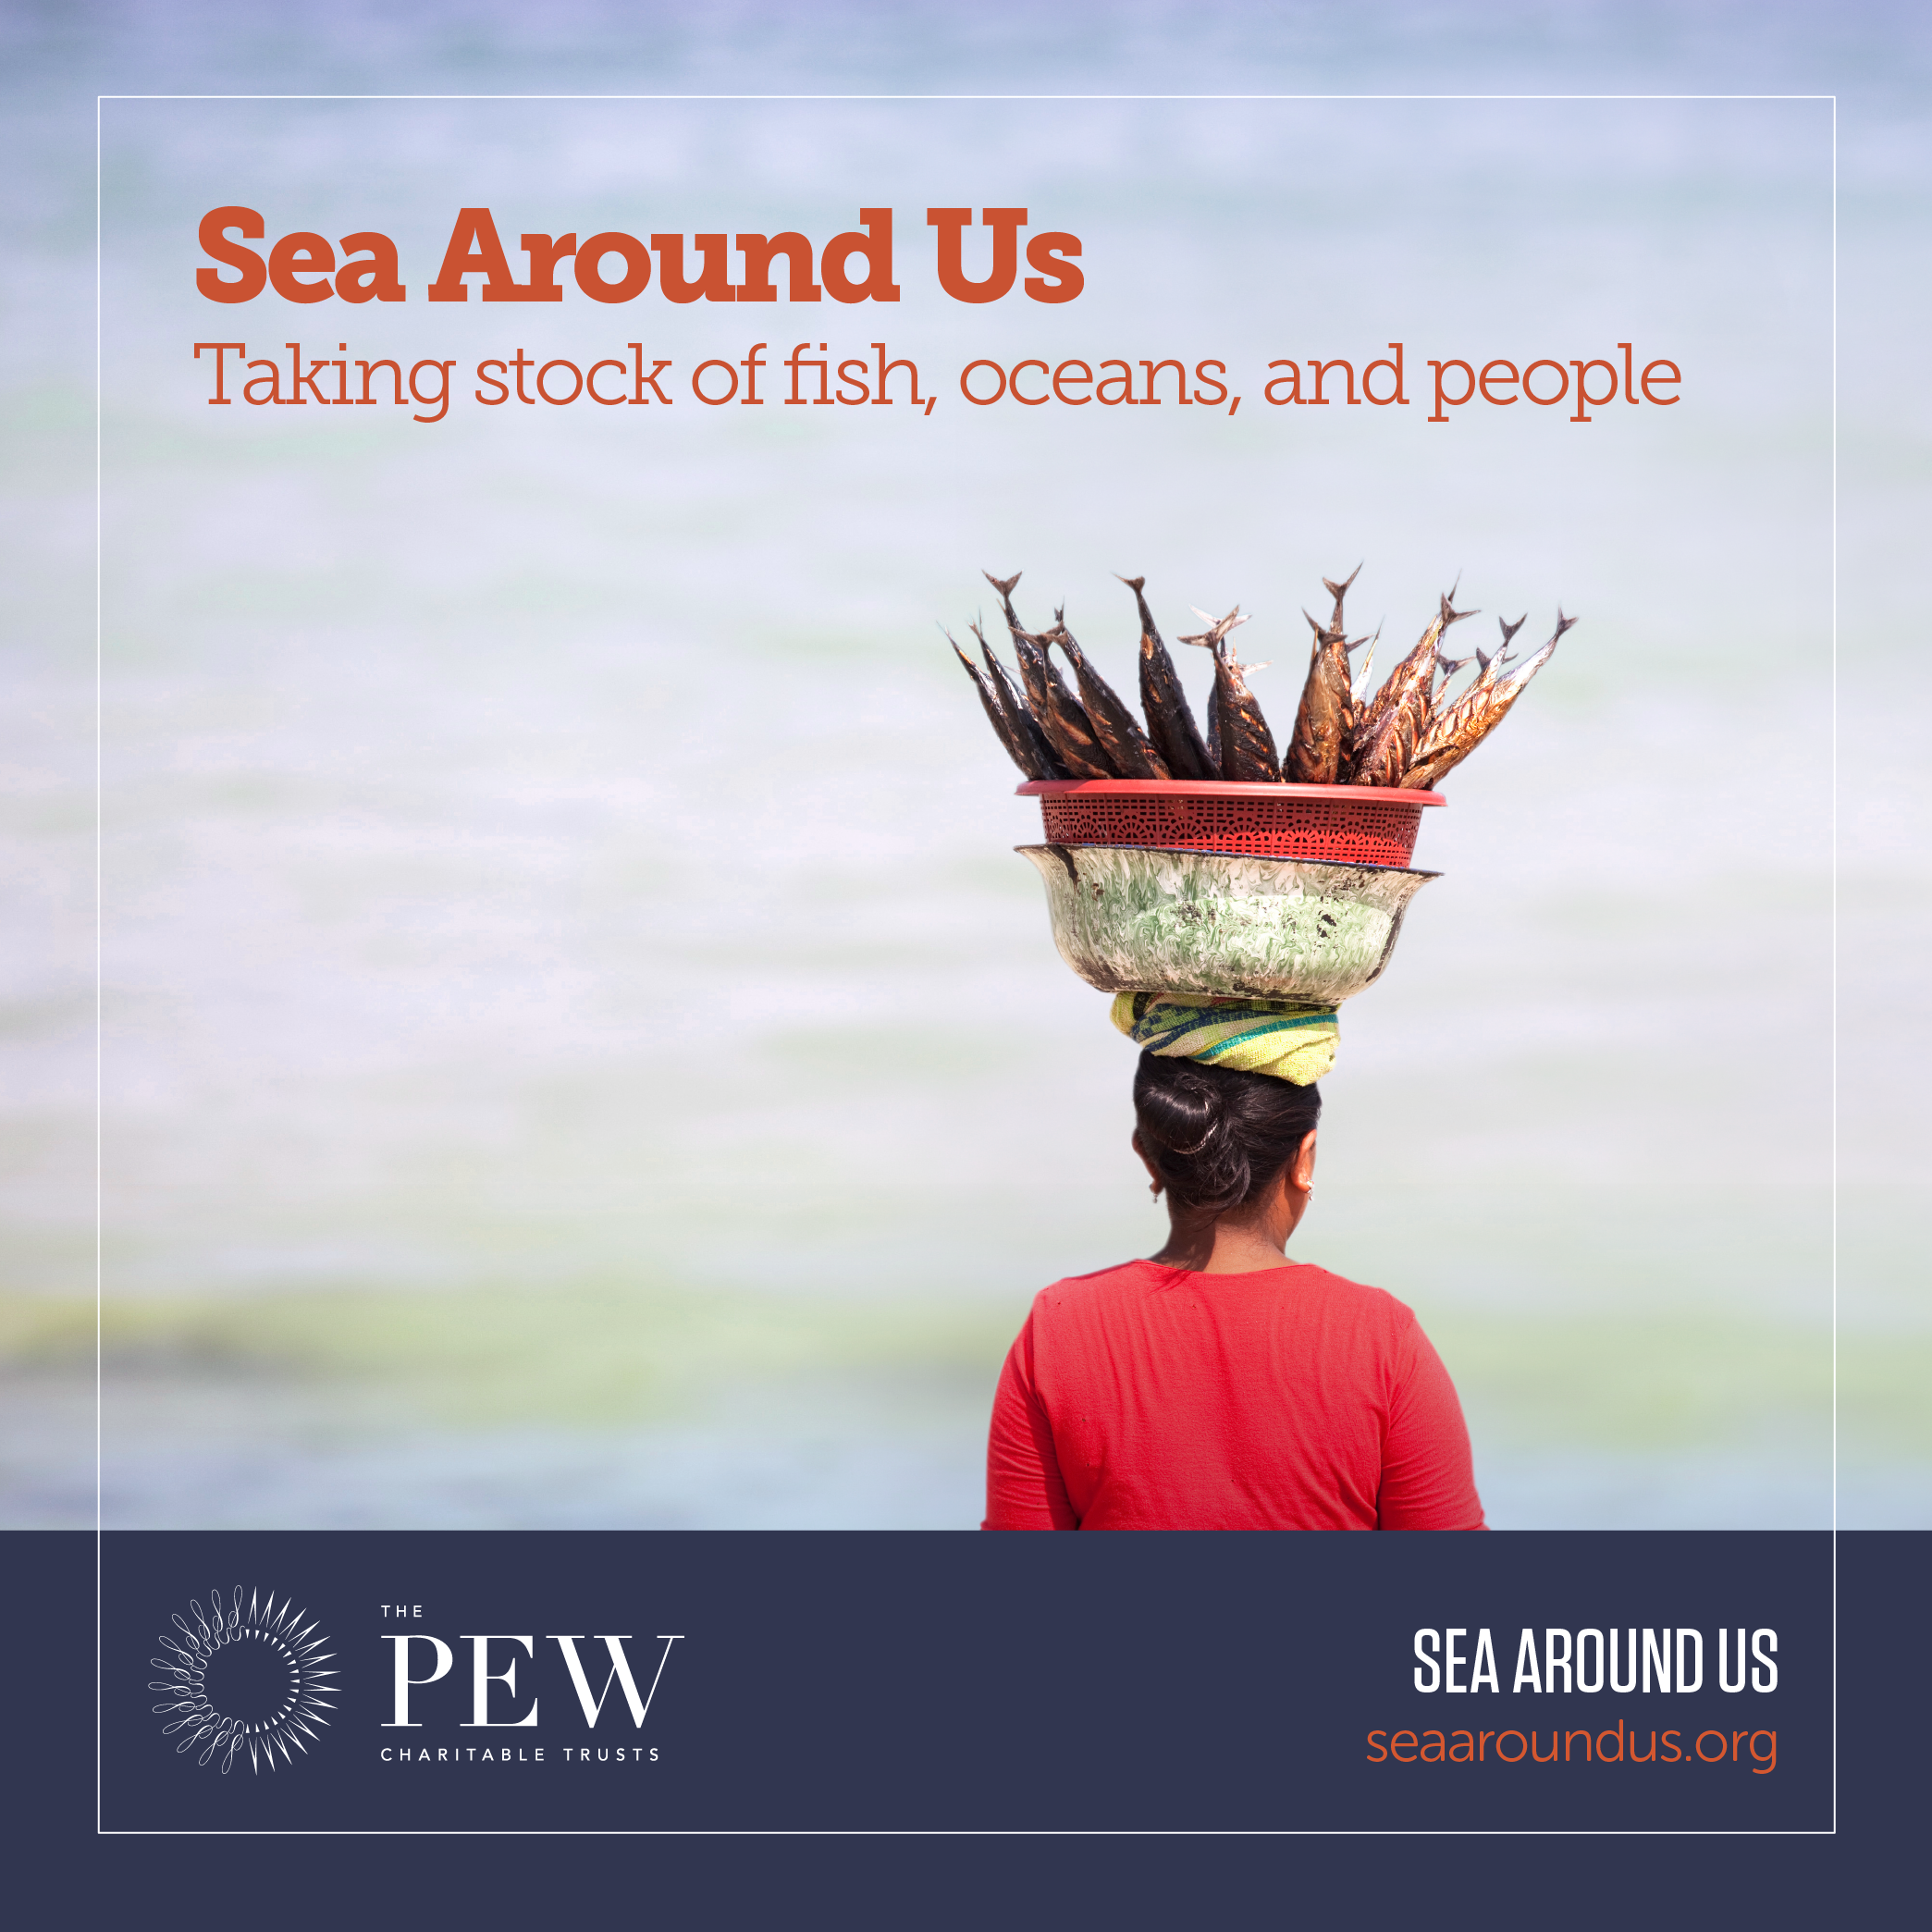 The Sea Around Us: Taking Stock of Our Fish, Oceans, and People